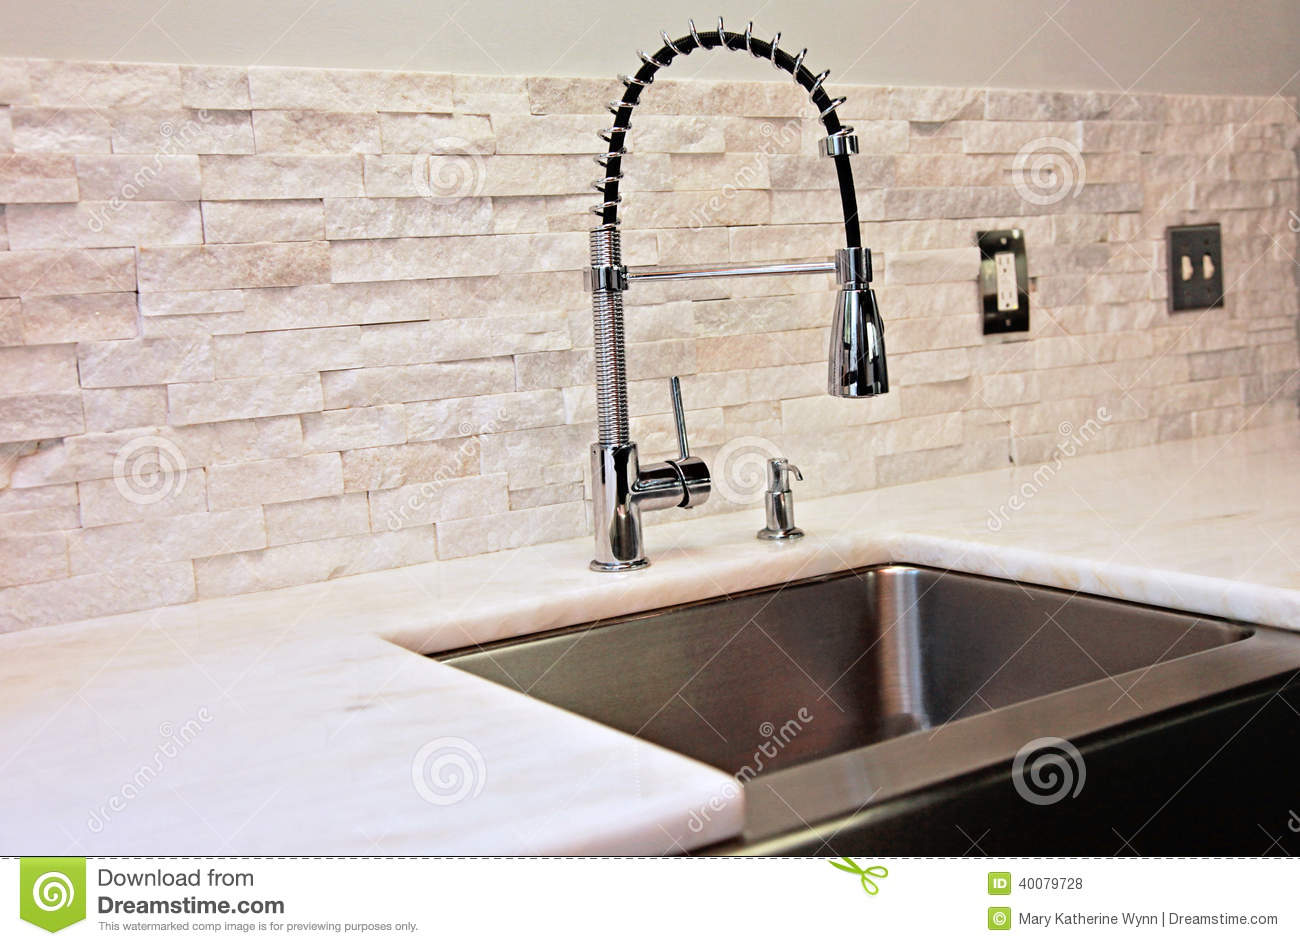 modern kitchen detail sink marble counter stacked stone back splash industrial spray faucet 40079728